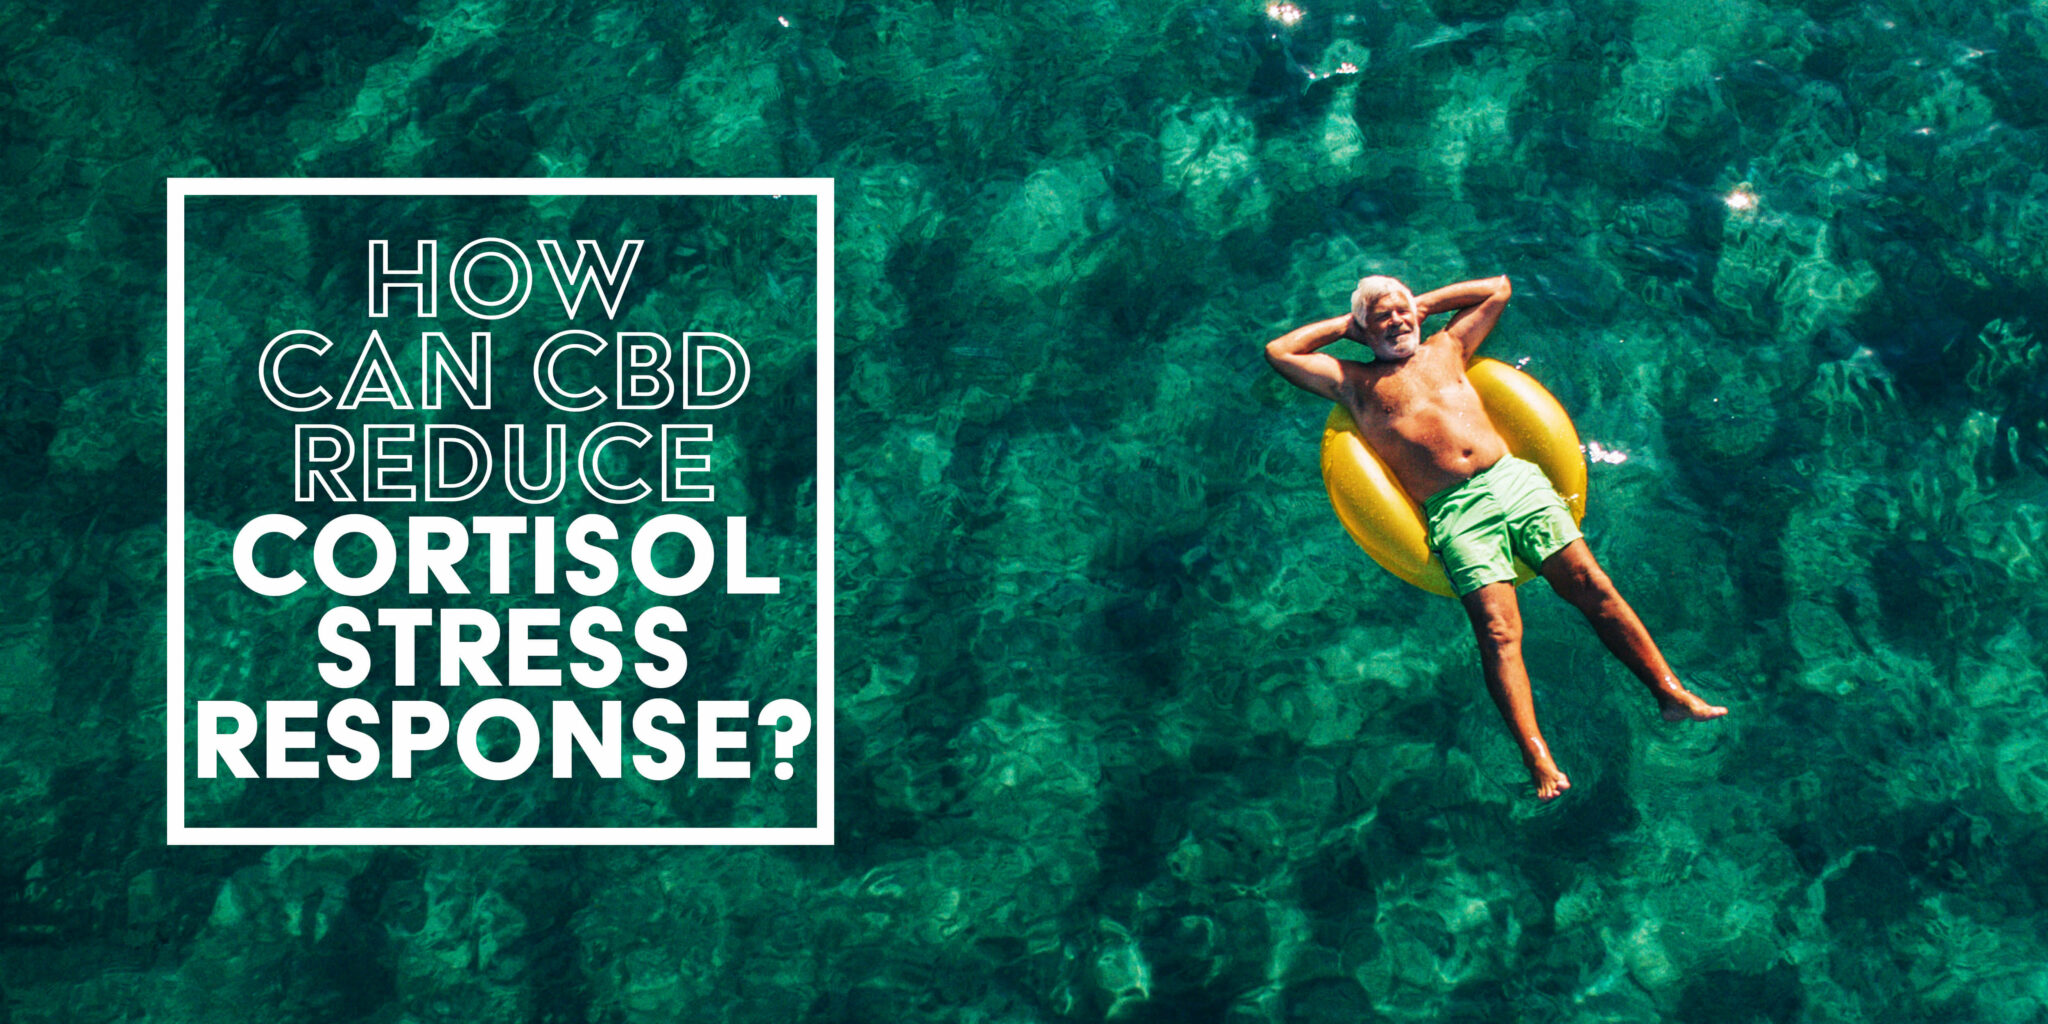 How Can CBD Reduce Cortisol Stress Response?